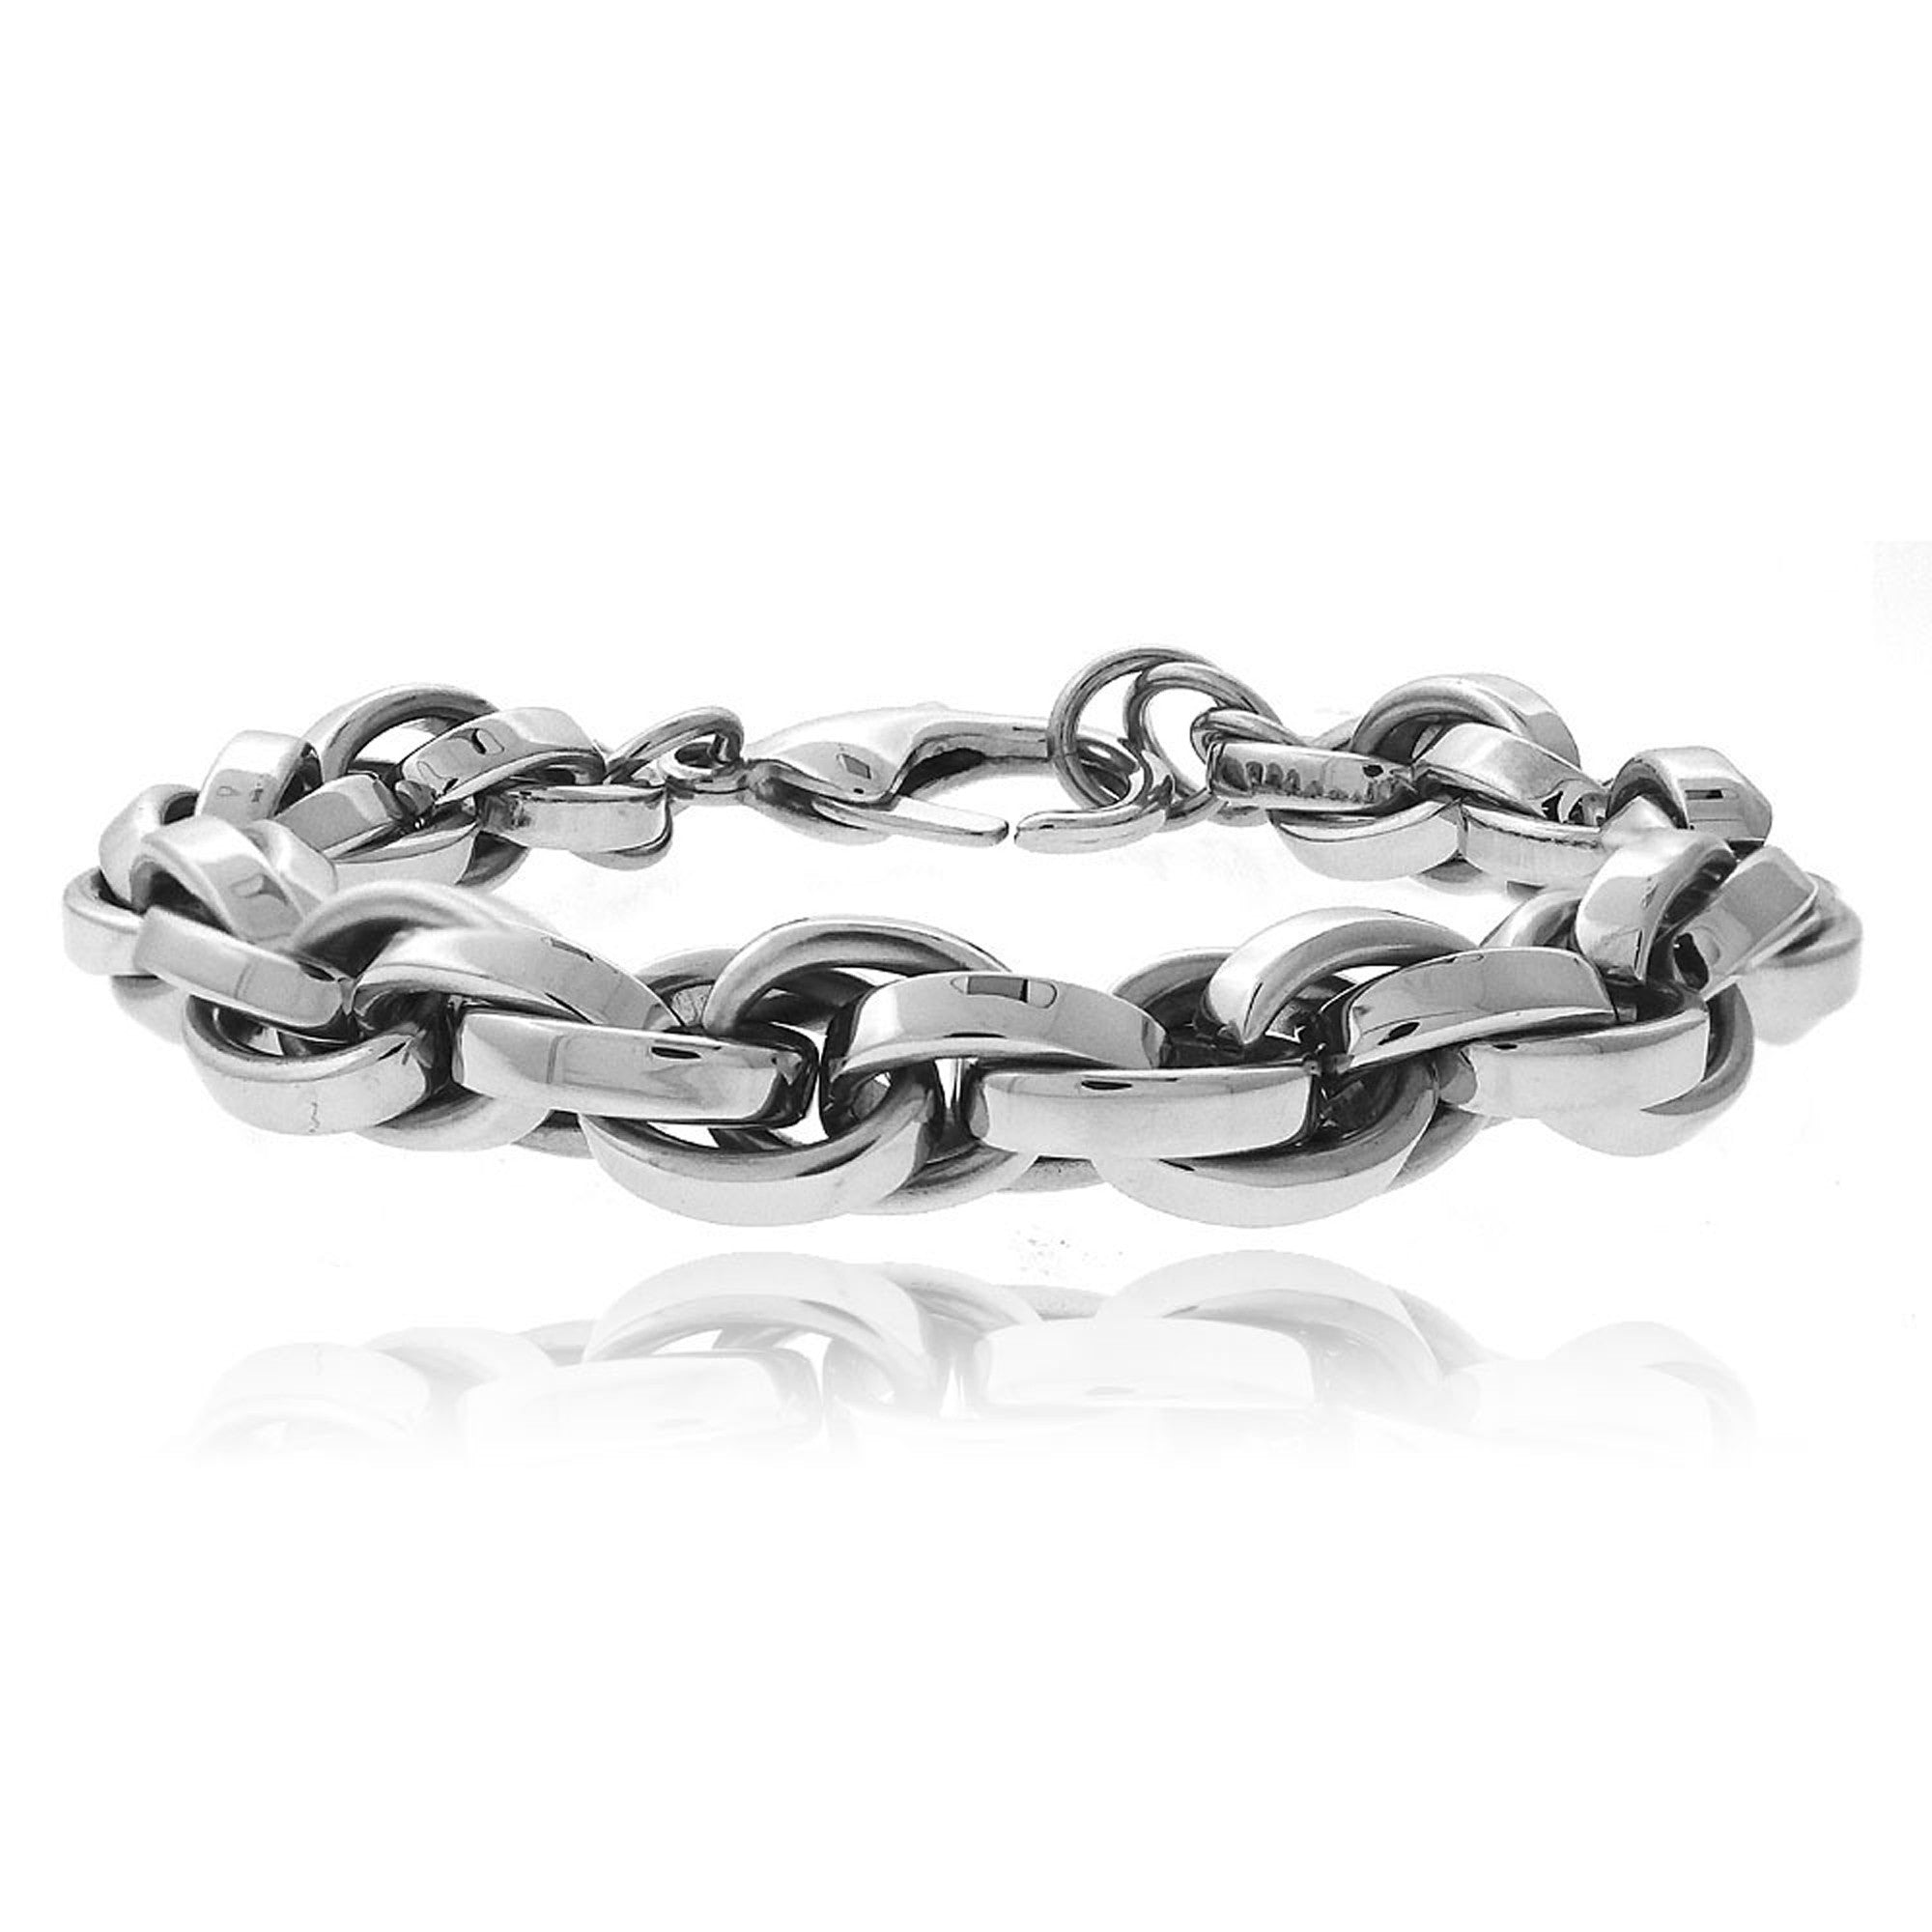 Stainless Steel Silver Cable Chain Bracelet